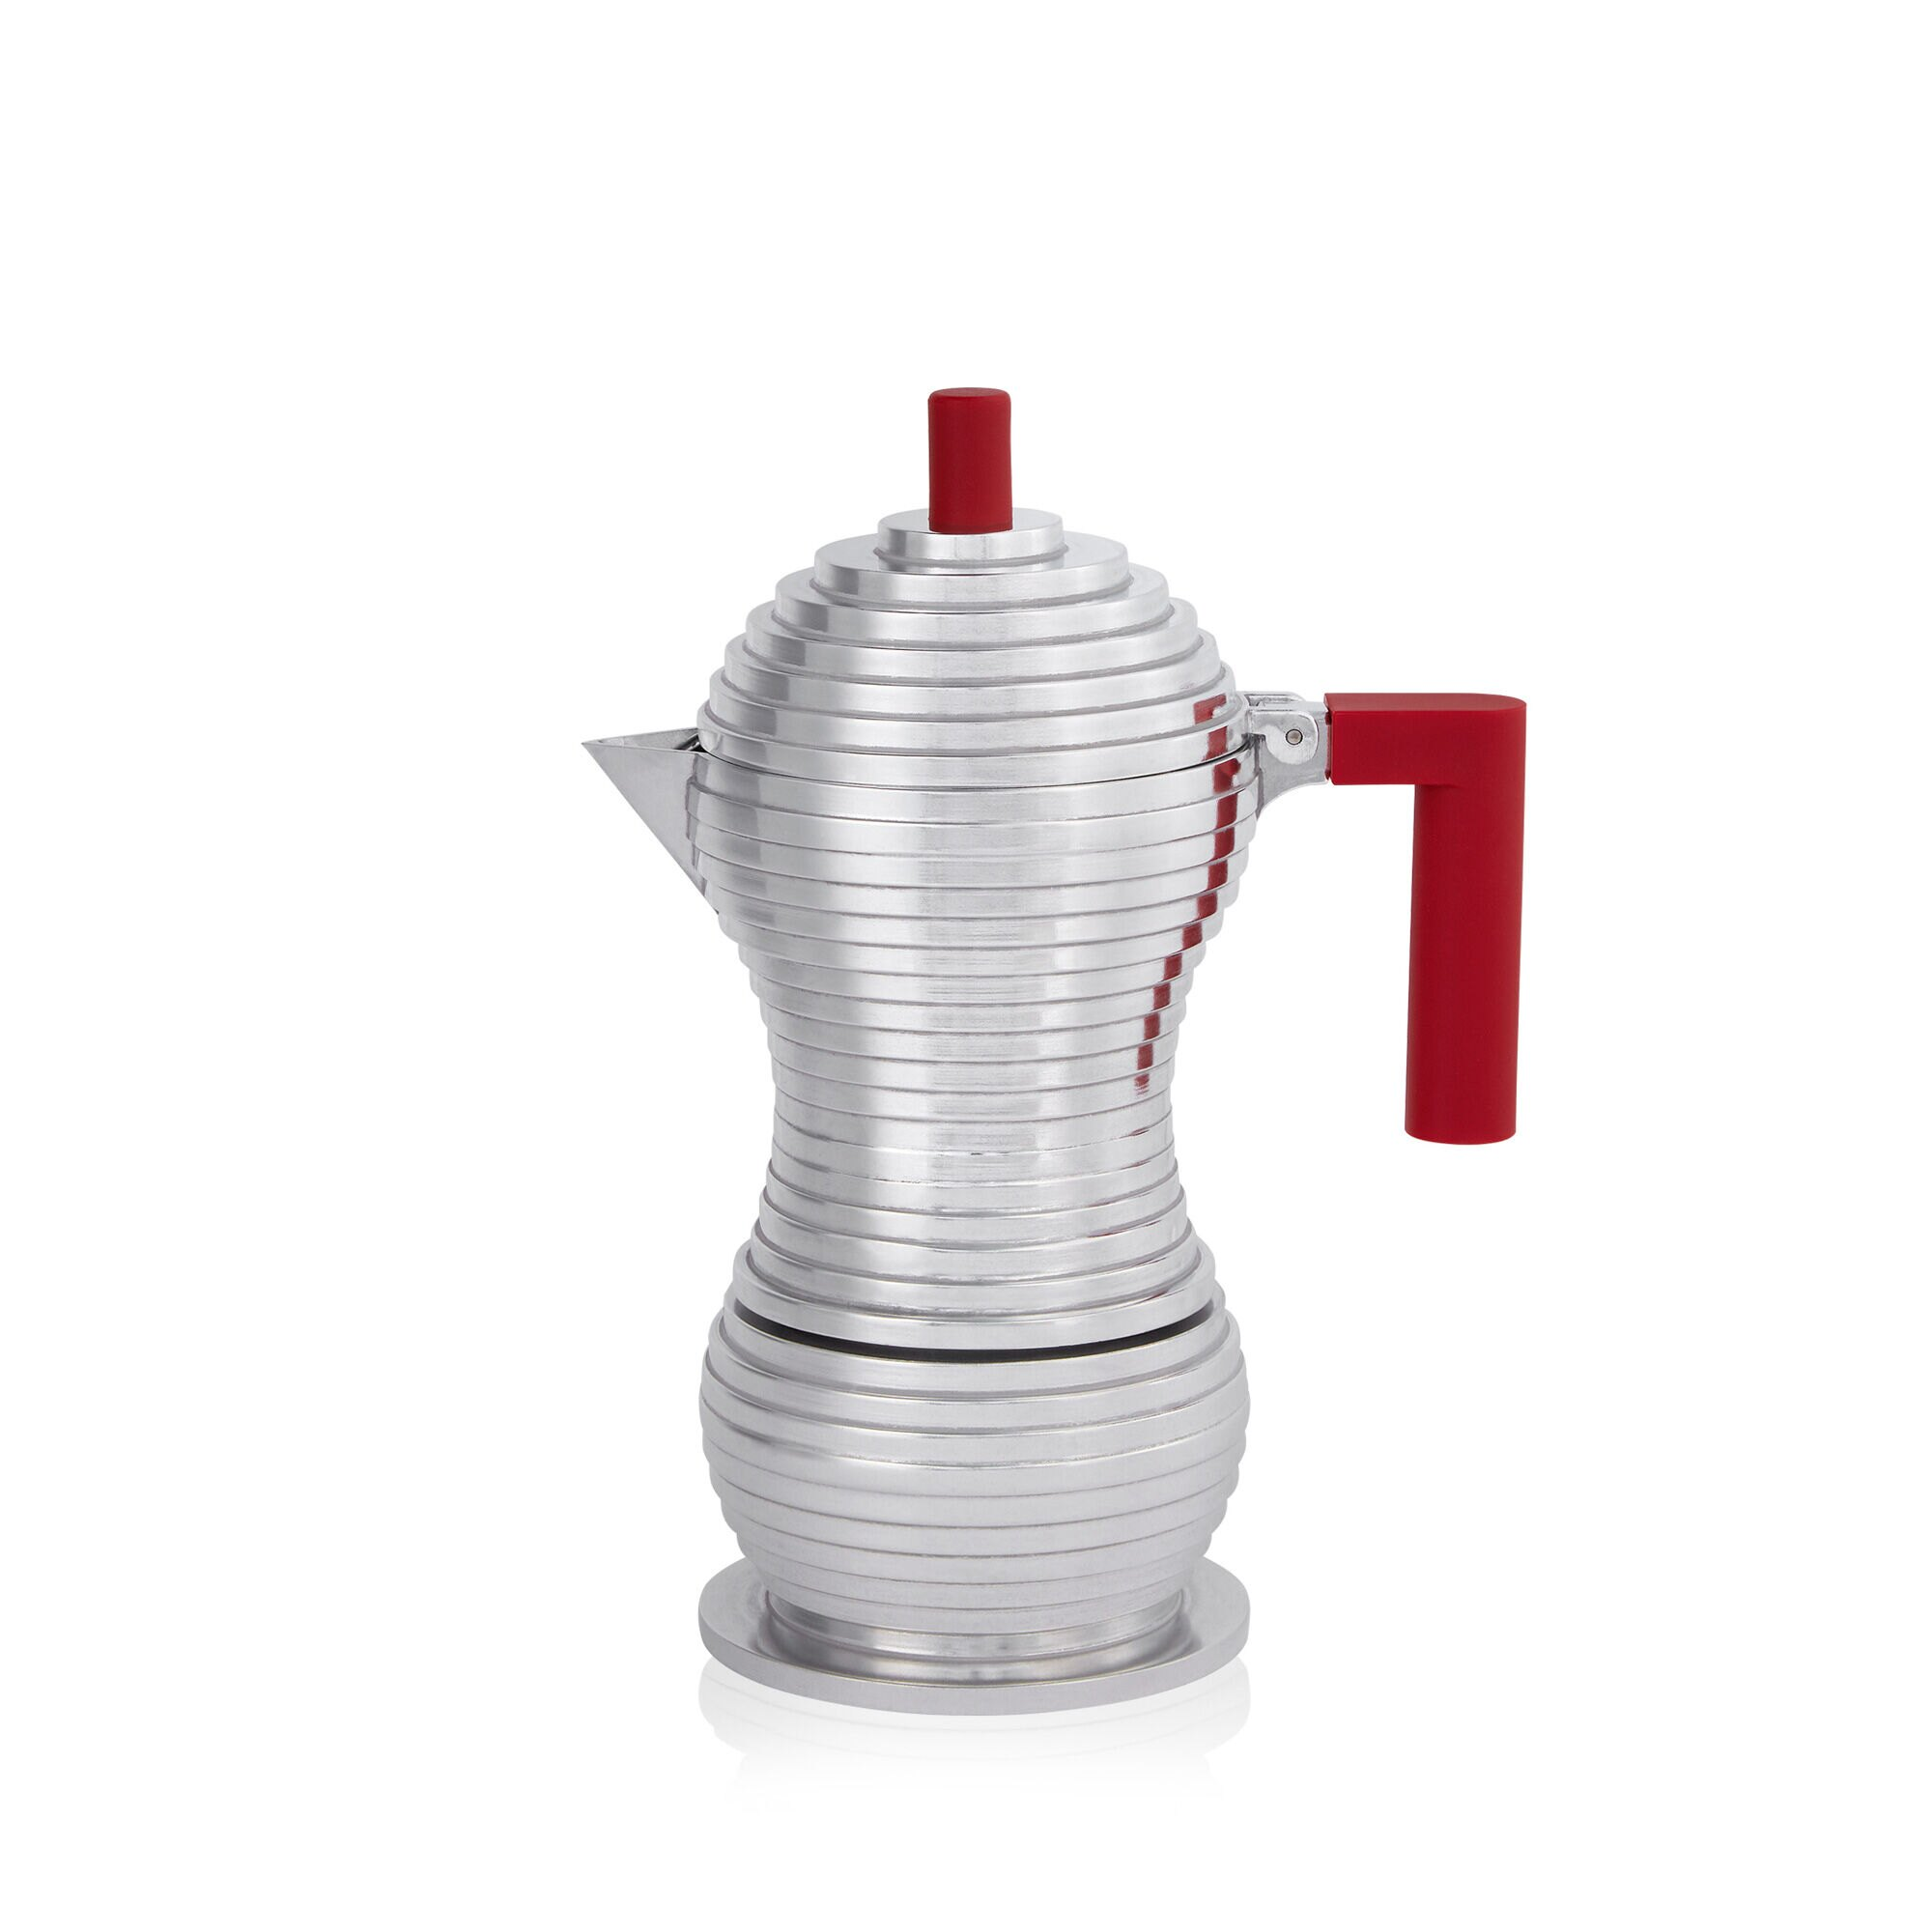 Alessi Pulcina Moka Pot Red side view